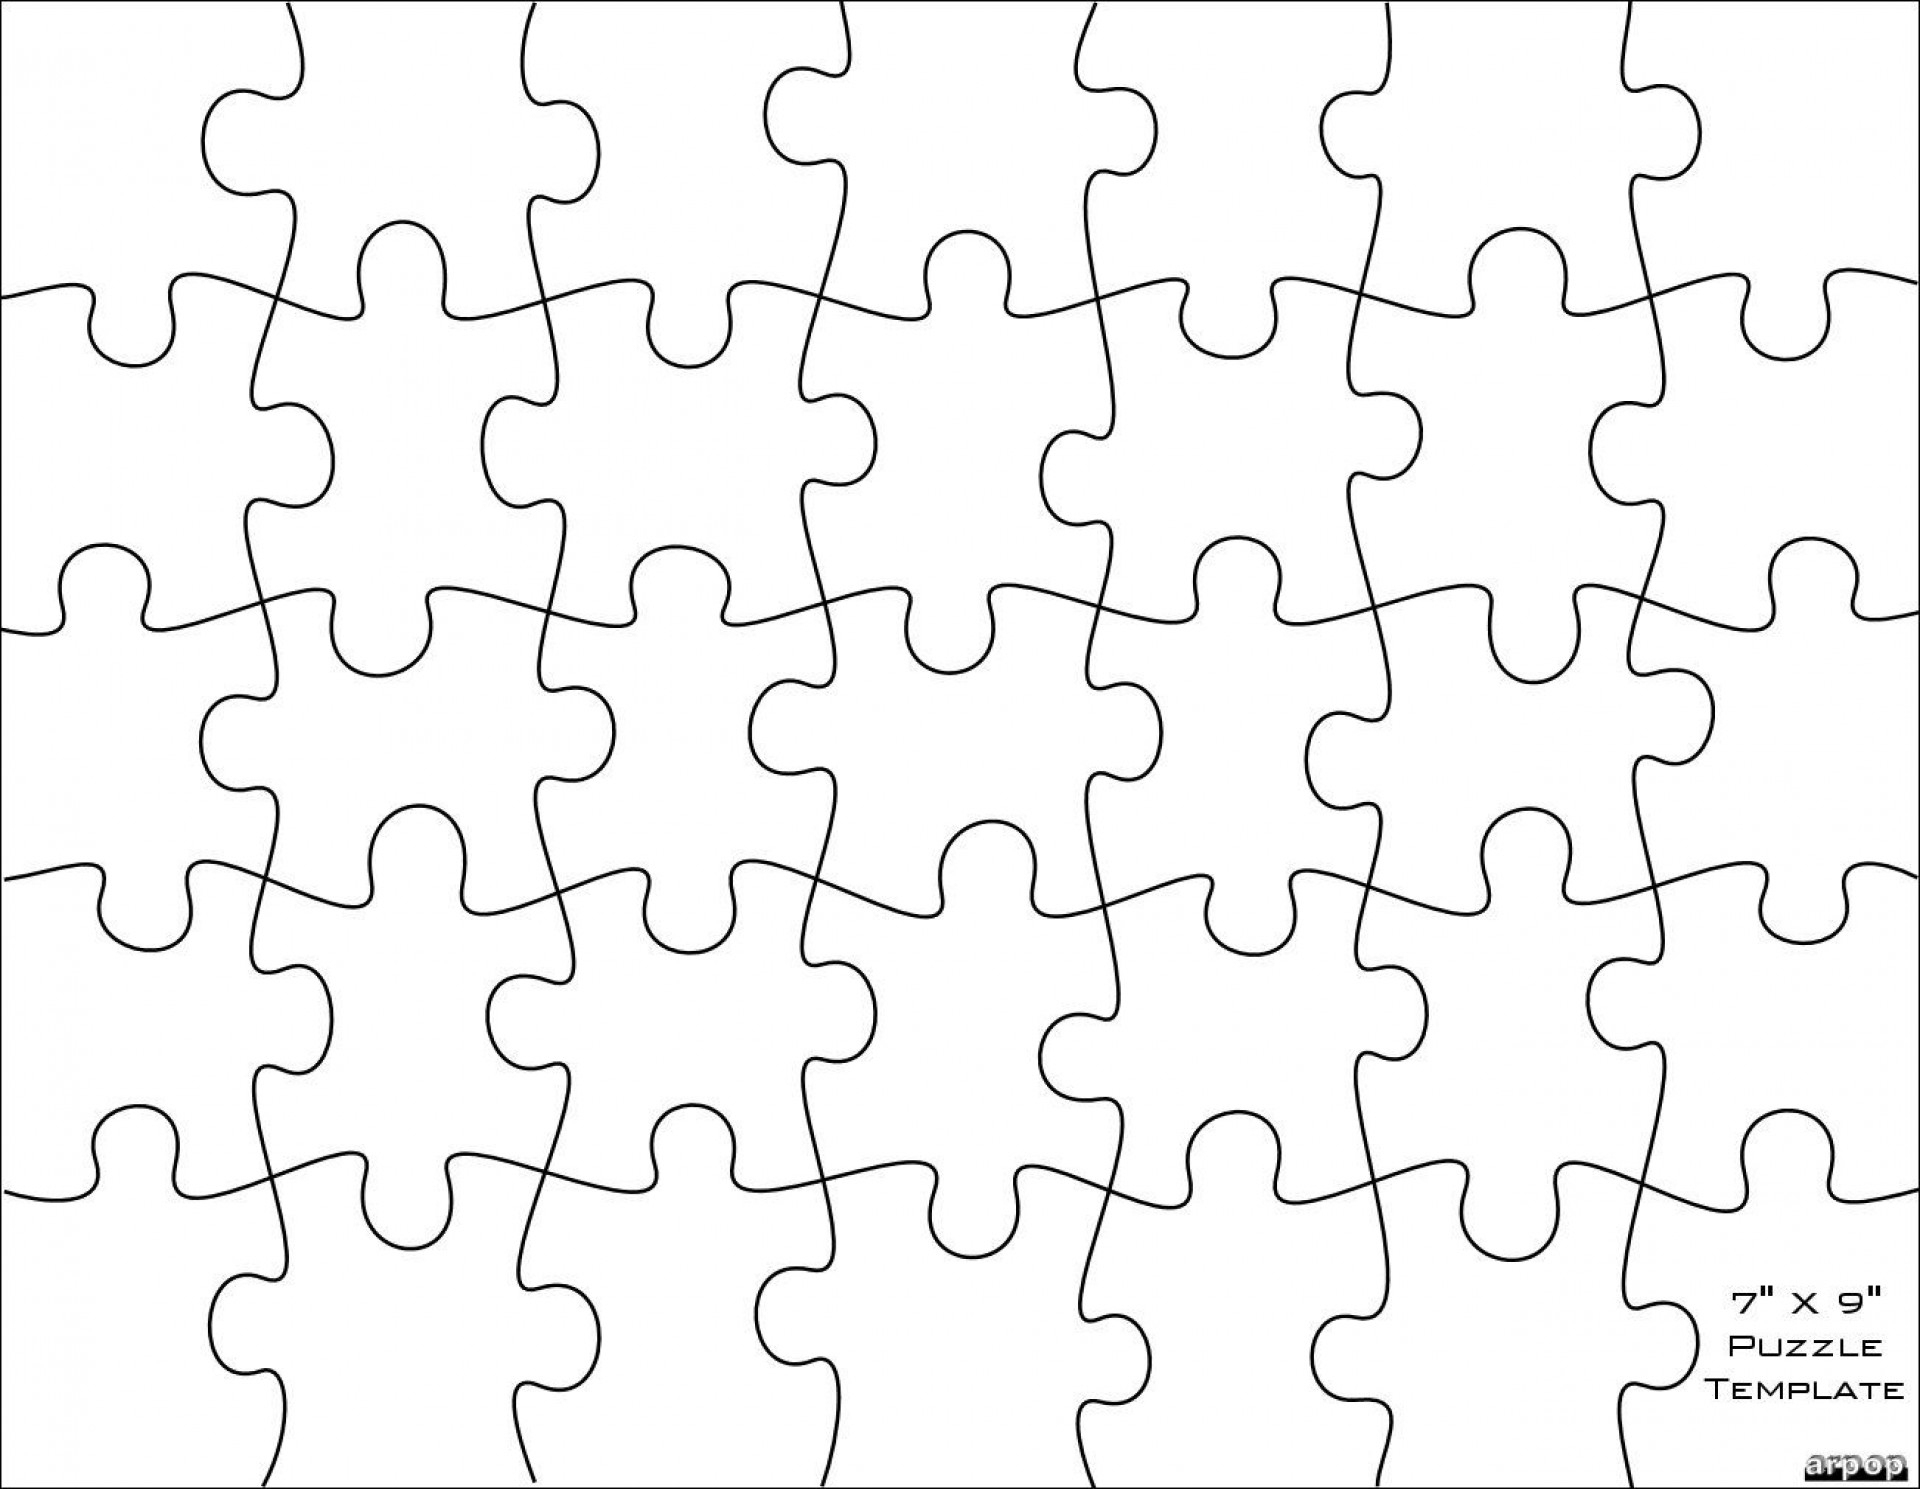 006 Jigsaw Puzzle Blank Template Twenty Pieces Simple Jig Saw - Printable Jigsaw Puzzle Generator